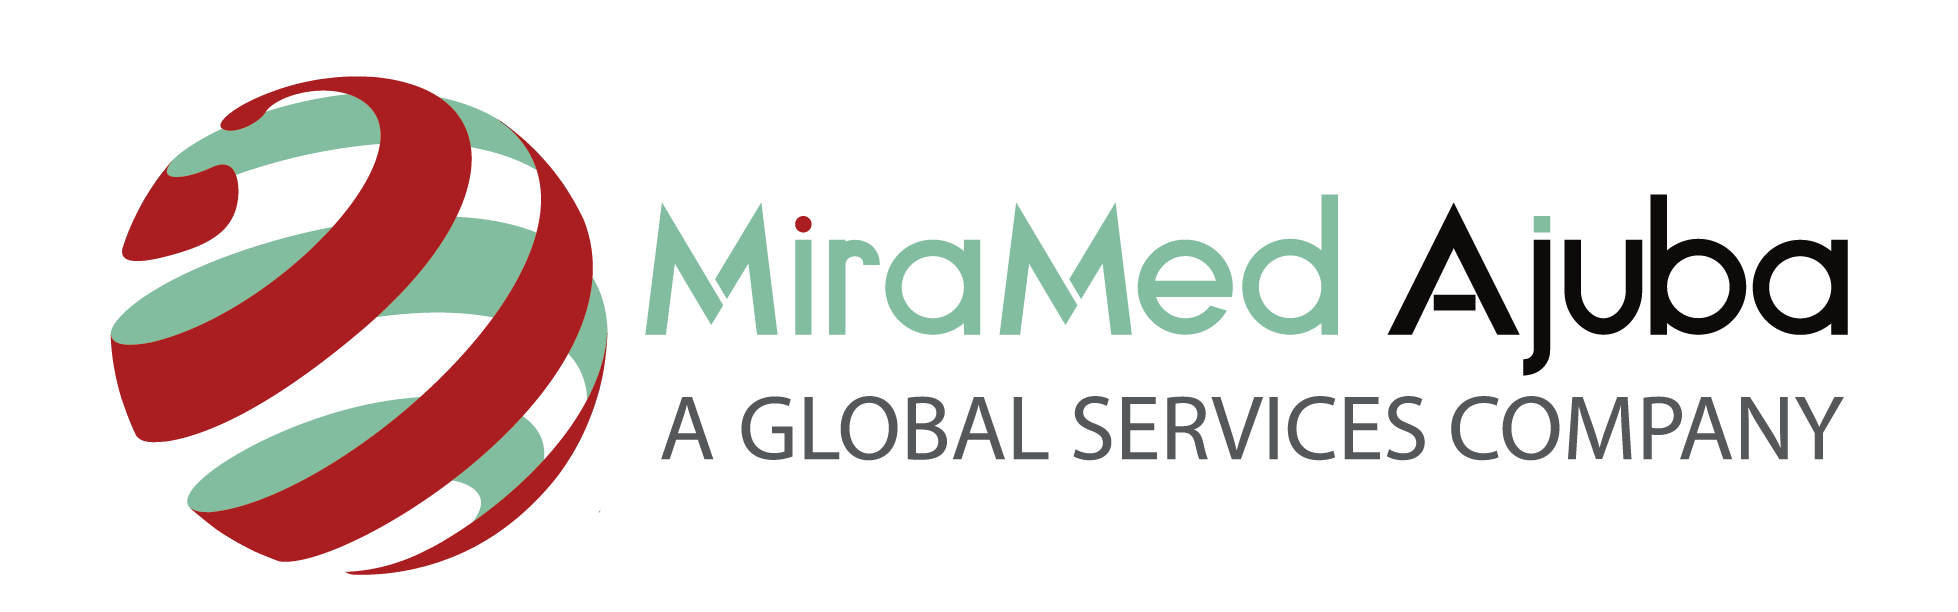 MiraMed Ajuba International LLC A Subsidiary Of Global Services Inc Is Premier Provider Healthcare Revenue Cycle Outsourcing